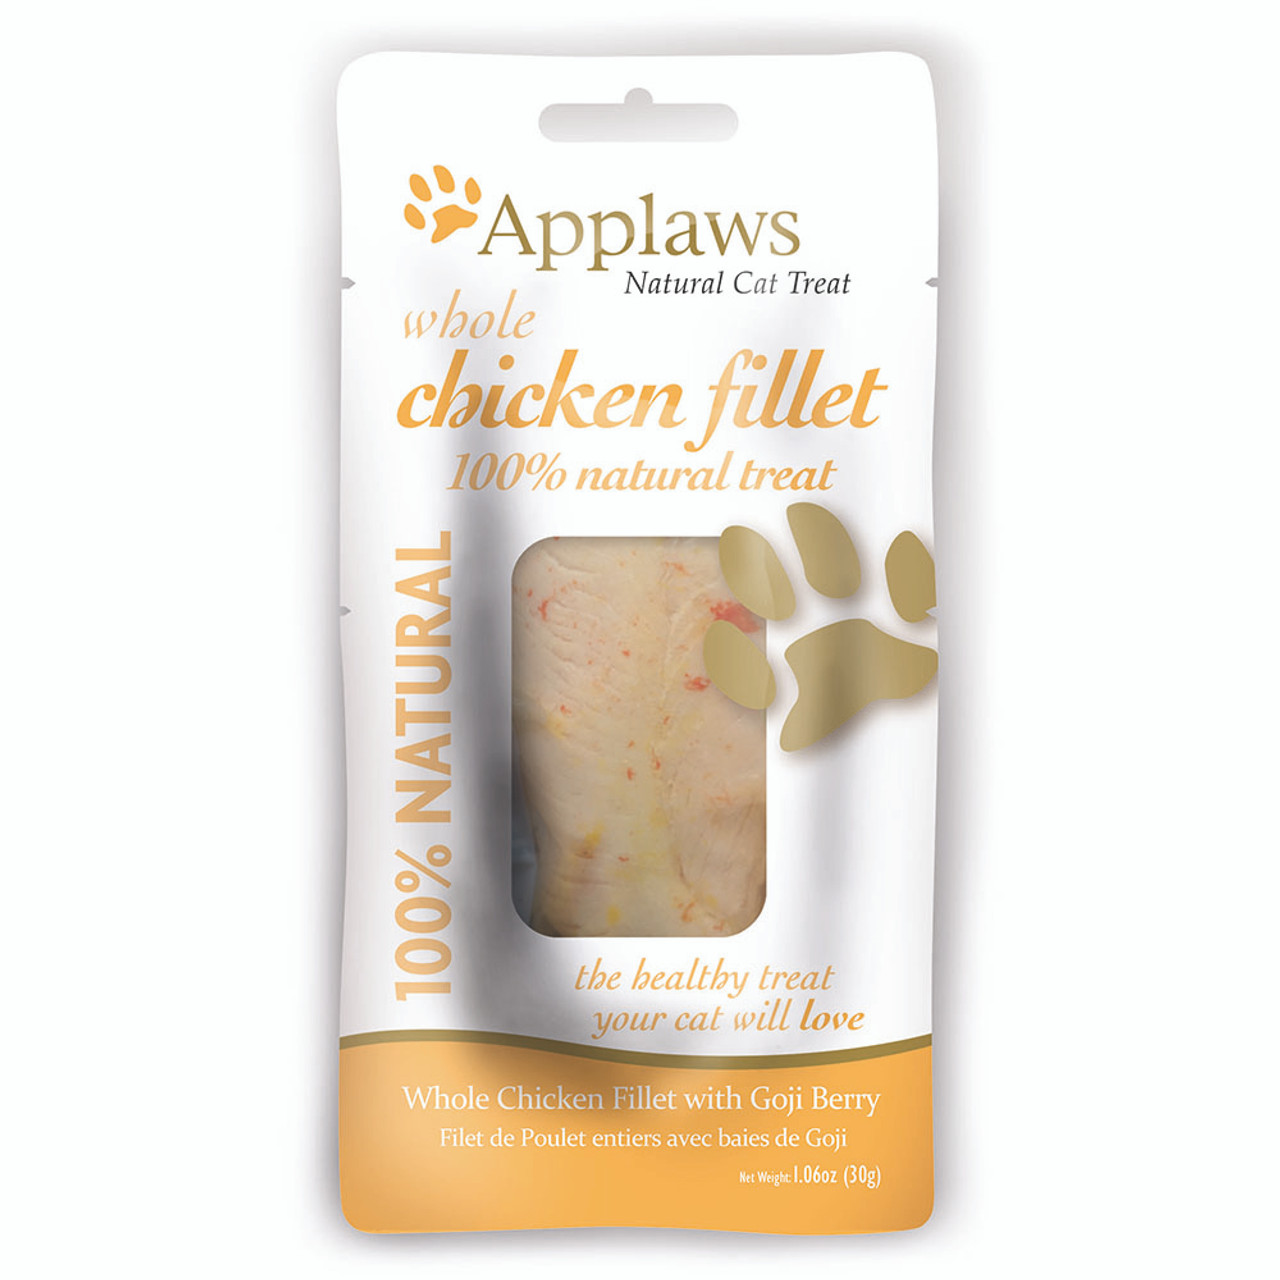 Applaws Whole Chicken Fillet Natural Cat Treat